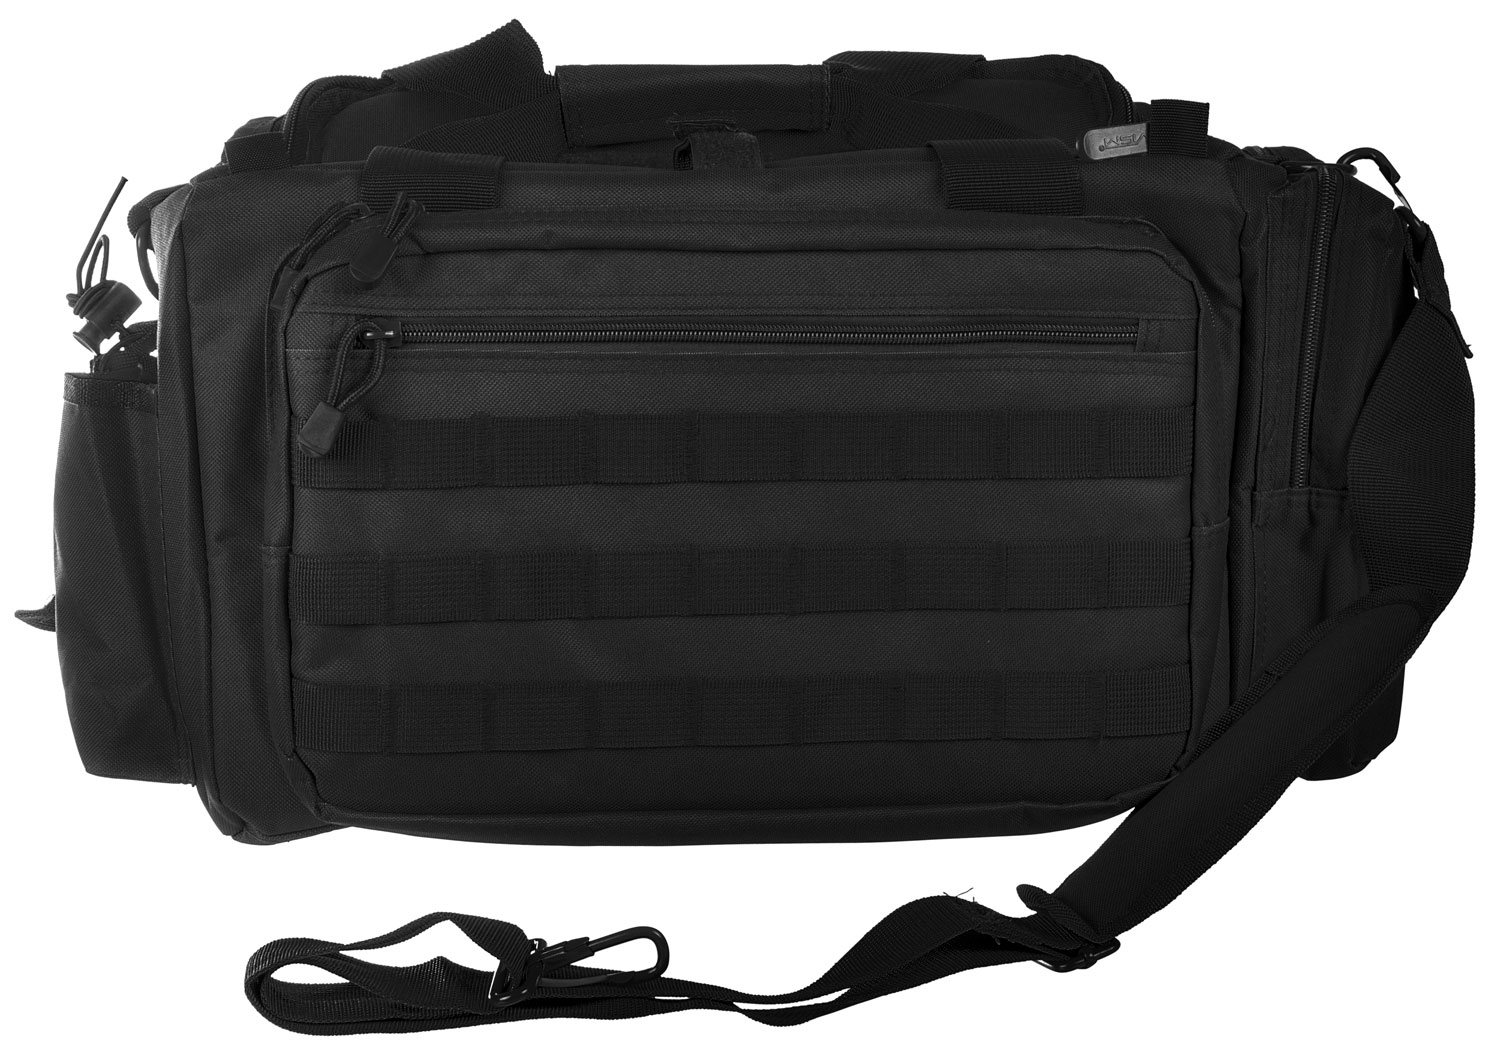 NCStar CVCRB2950B Competition Range Bag  Black